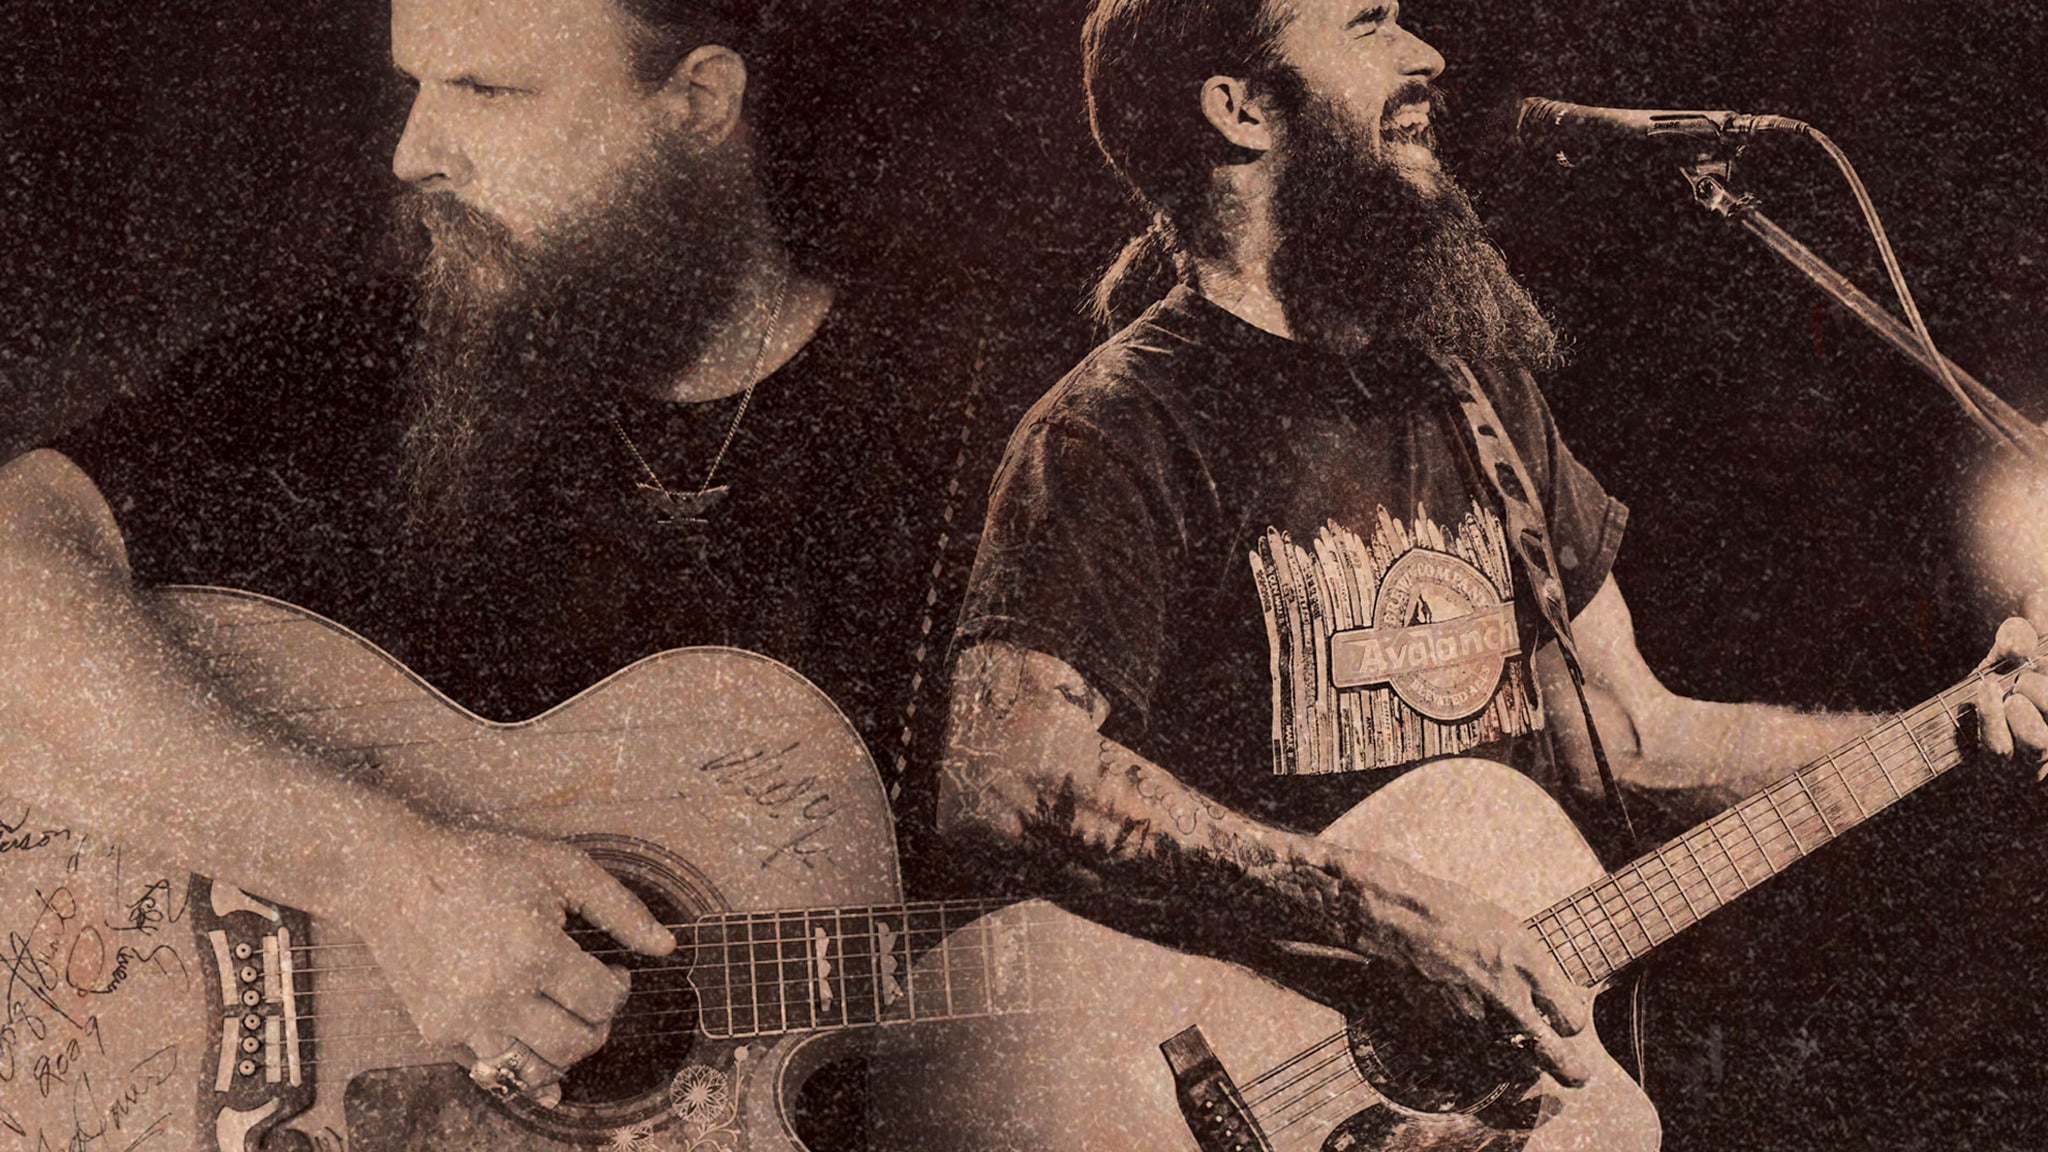 Jamey Johnson & Cody Jinks